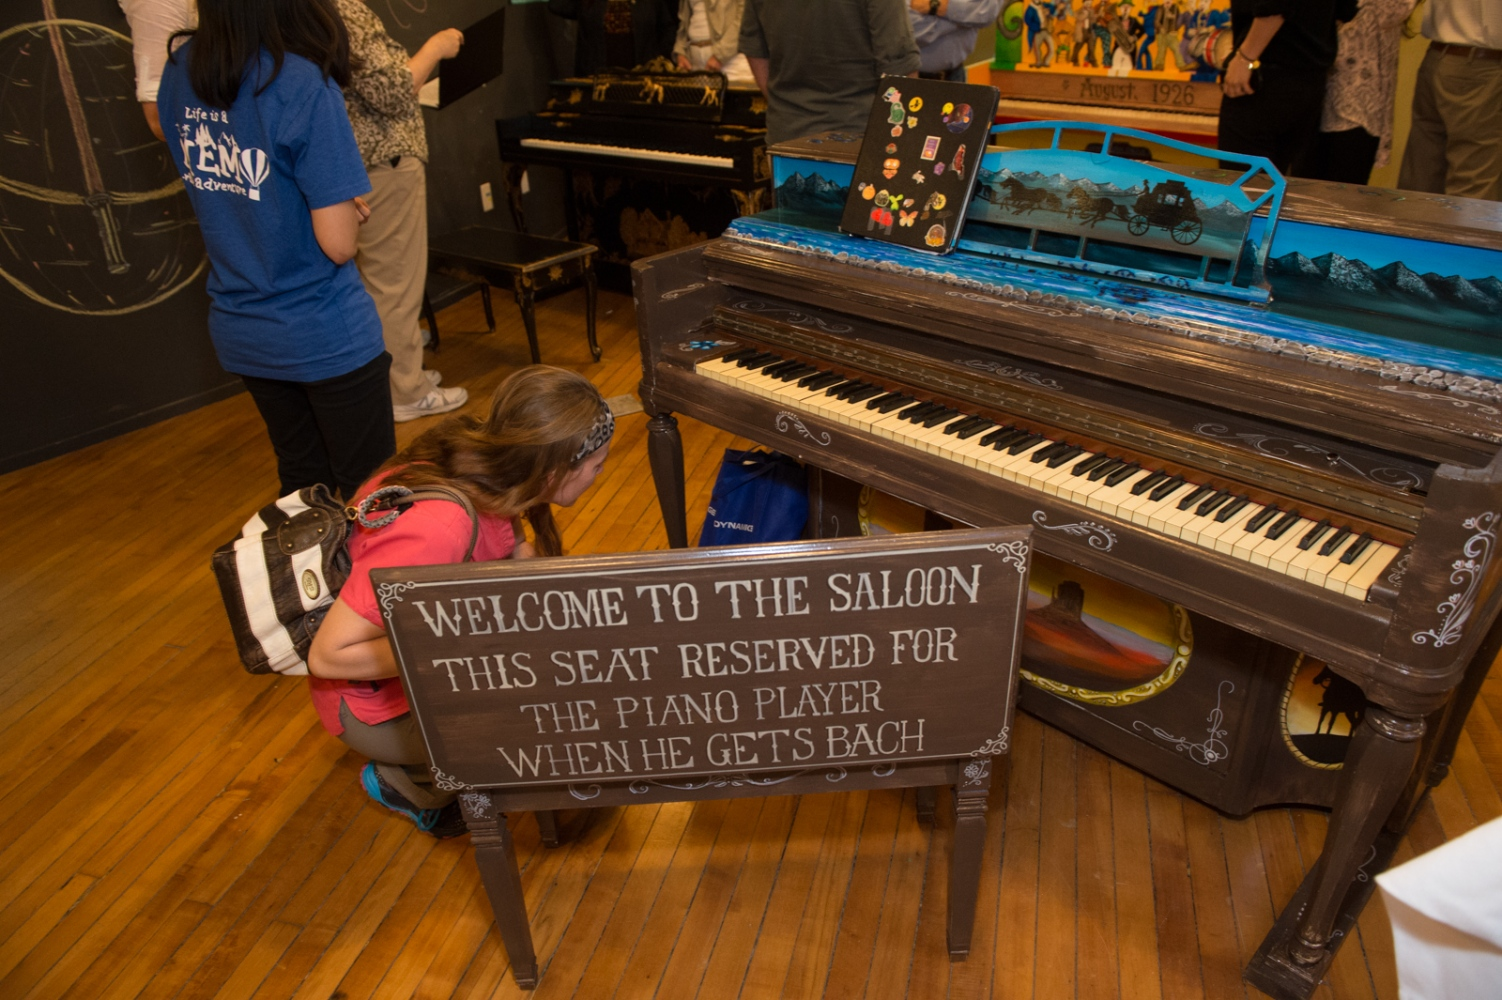 The pianos are shown at a pre-launch celebration where anyone involved in the project shares a glass of wine and swaps stories of the process.